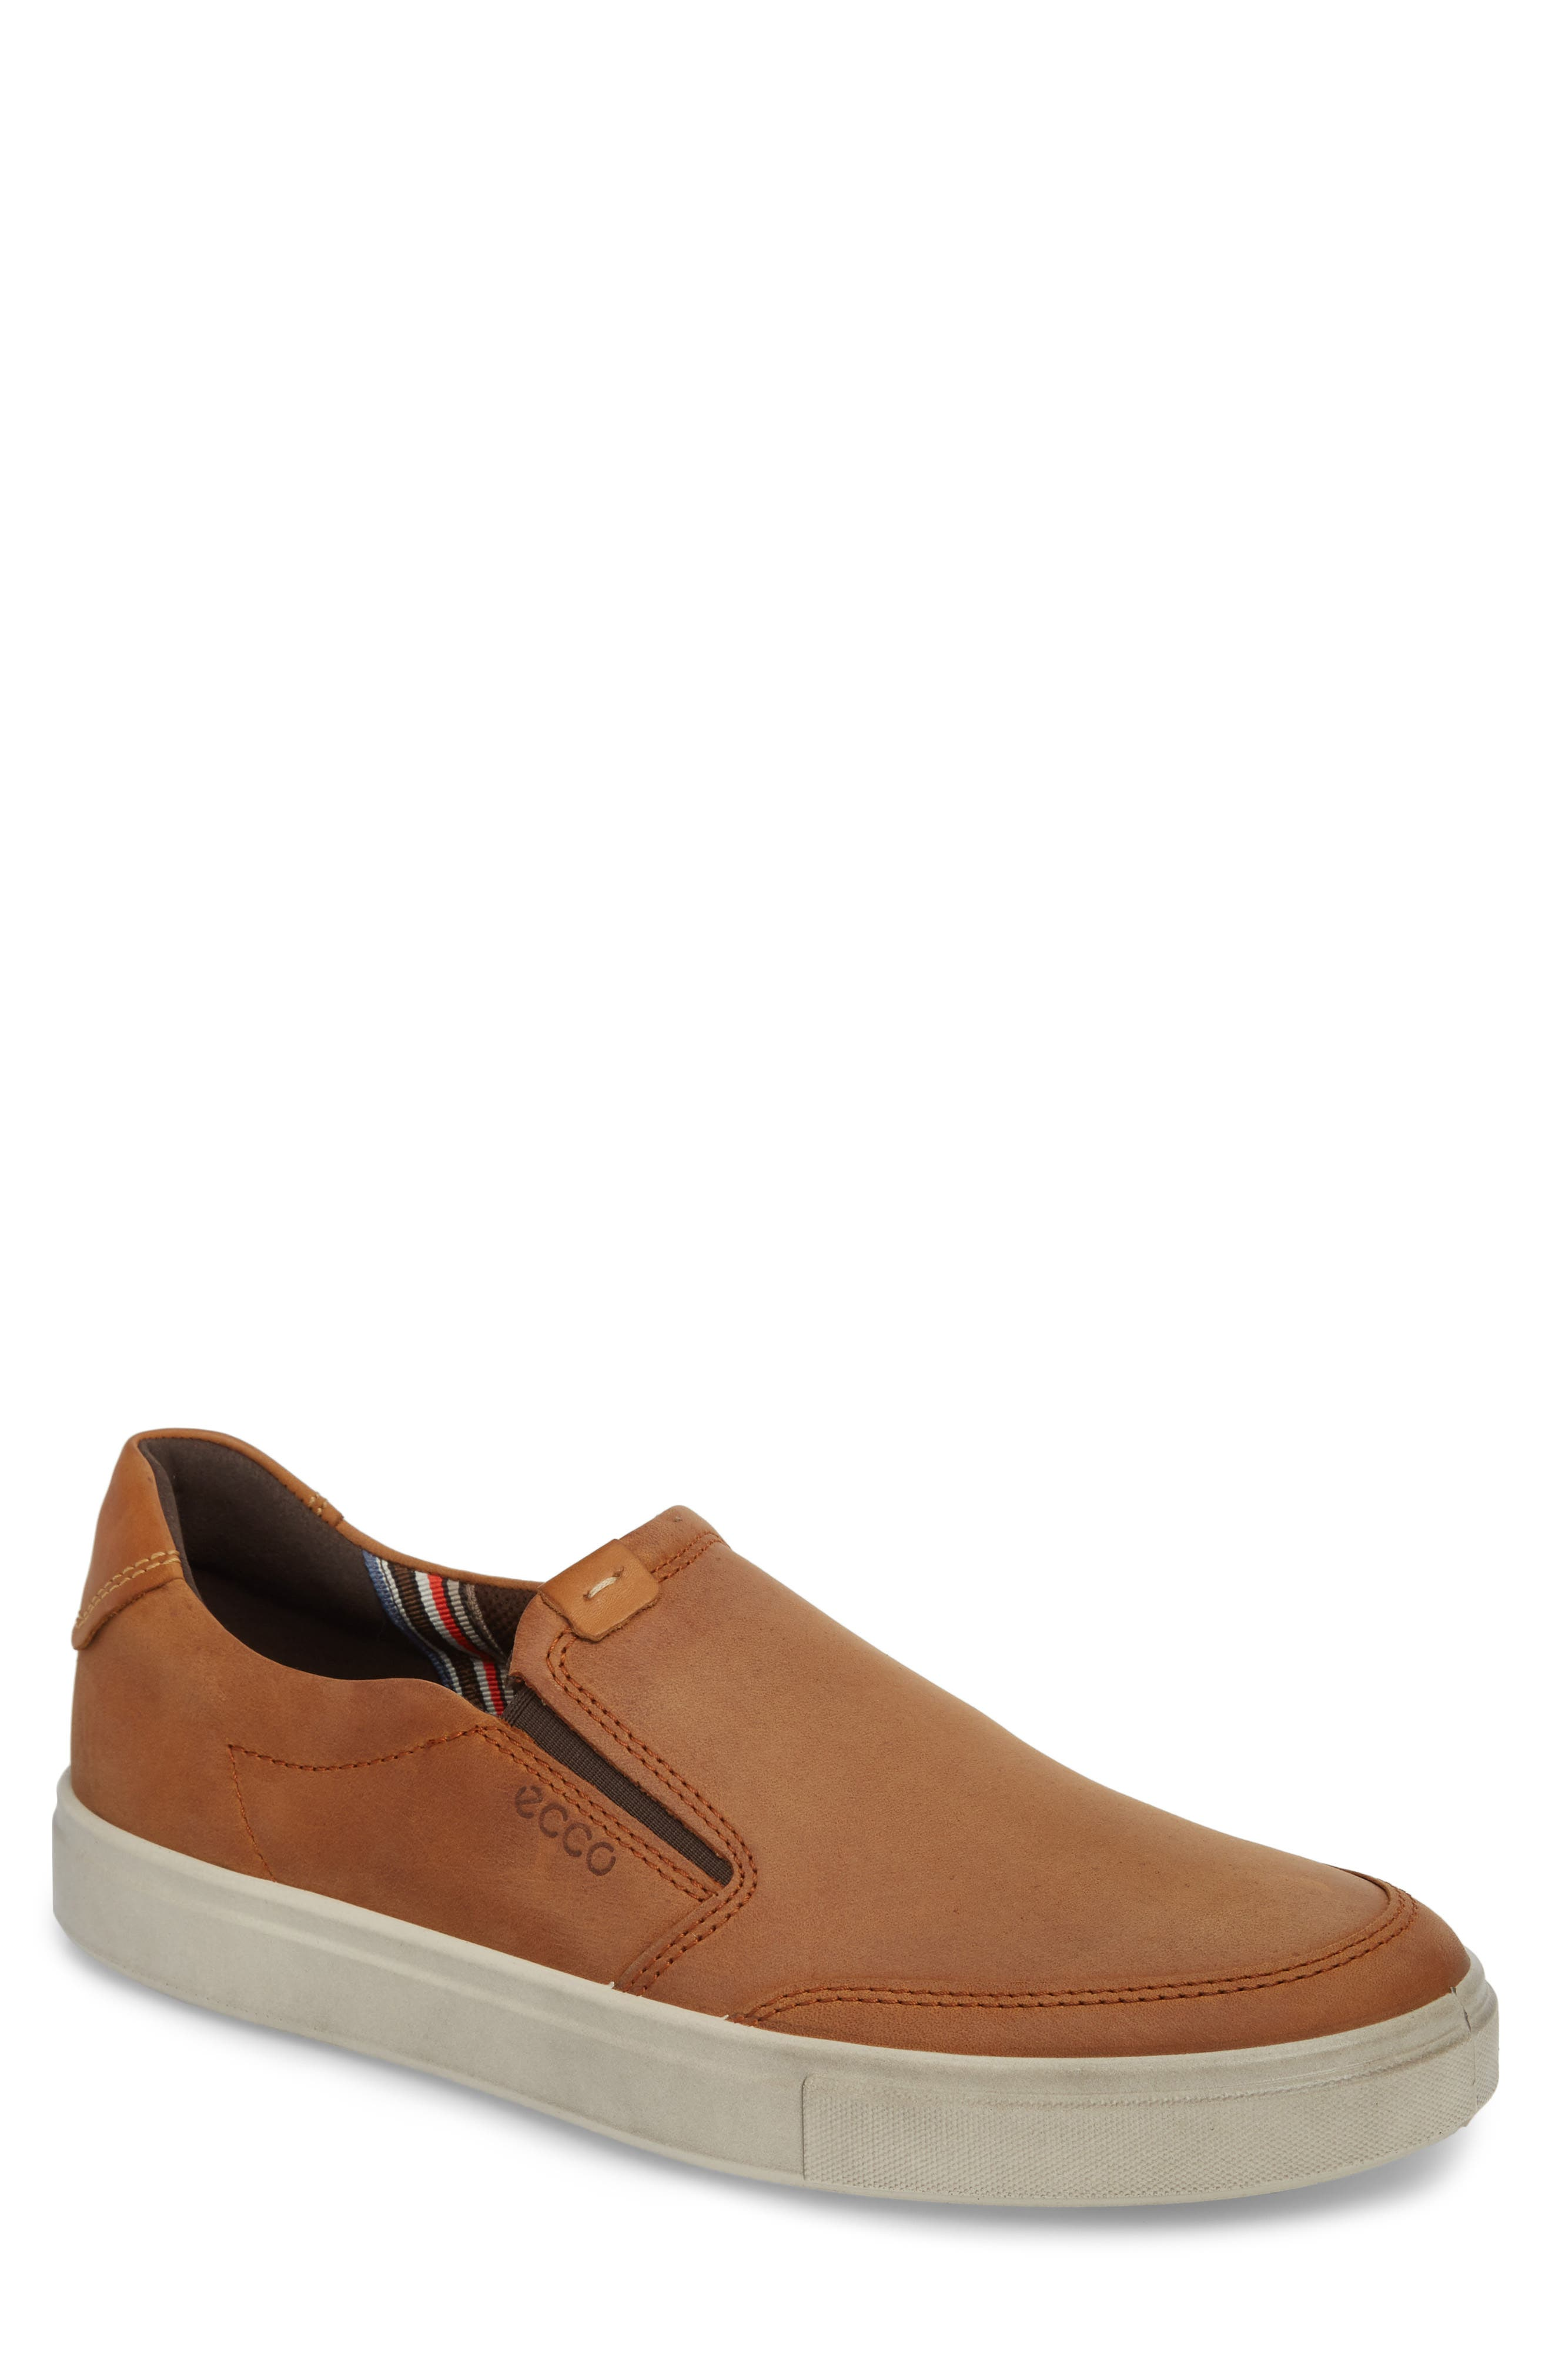 Kyle Slip-On,                         Main,                         color, AMBER LEATHER